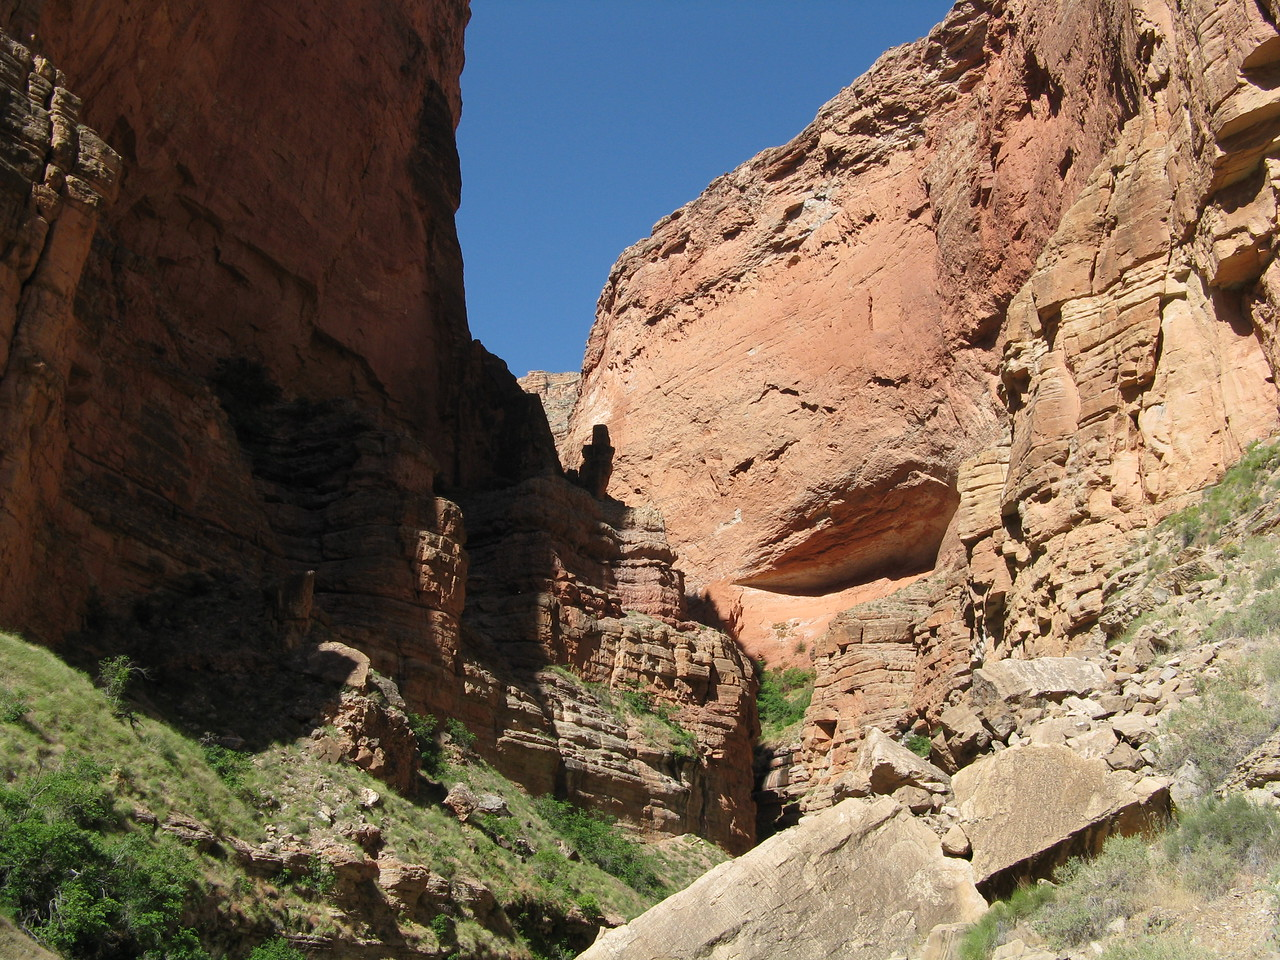 We climbed around and over huge boulders in the difficult climb up the side canyon.